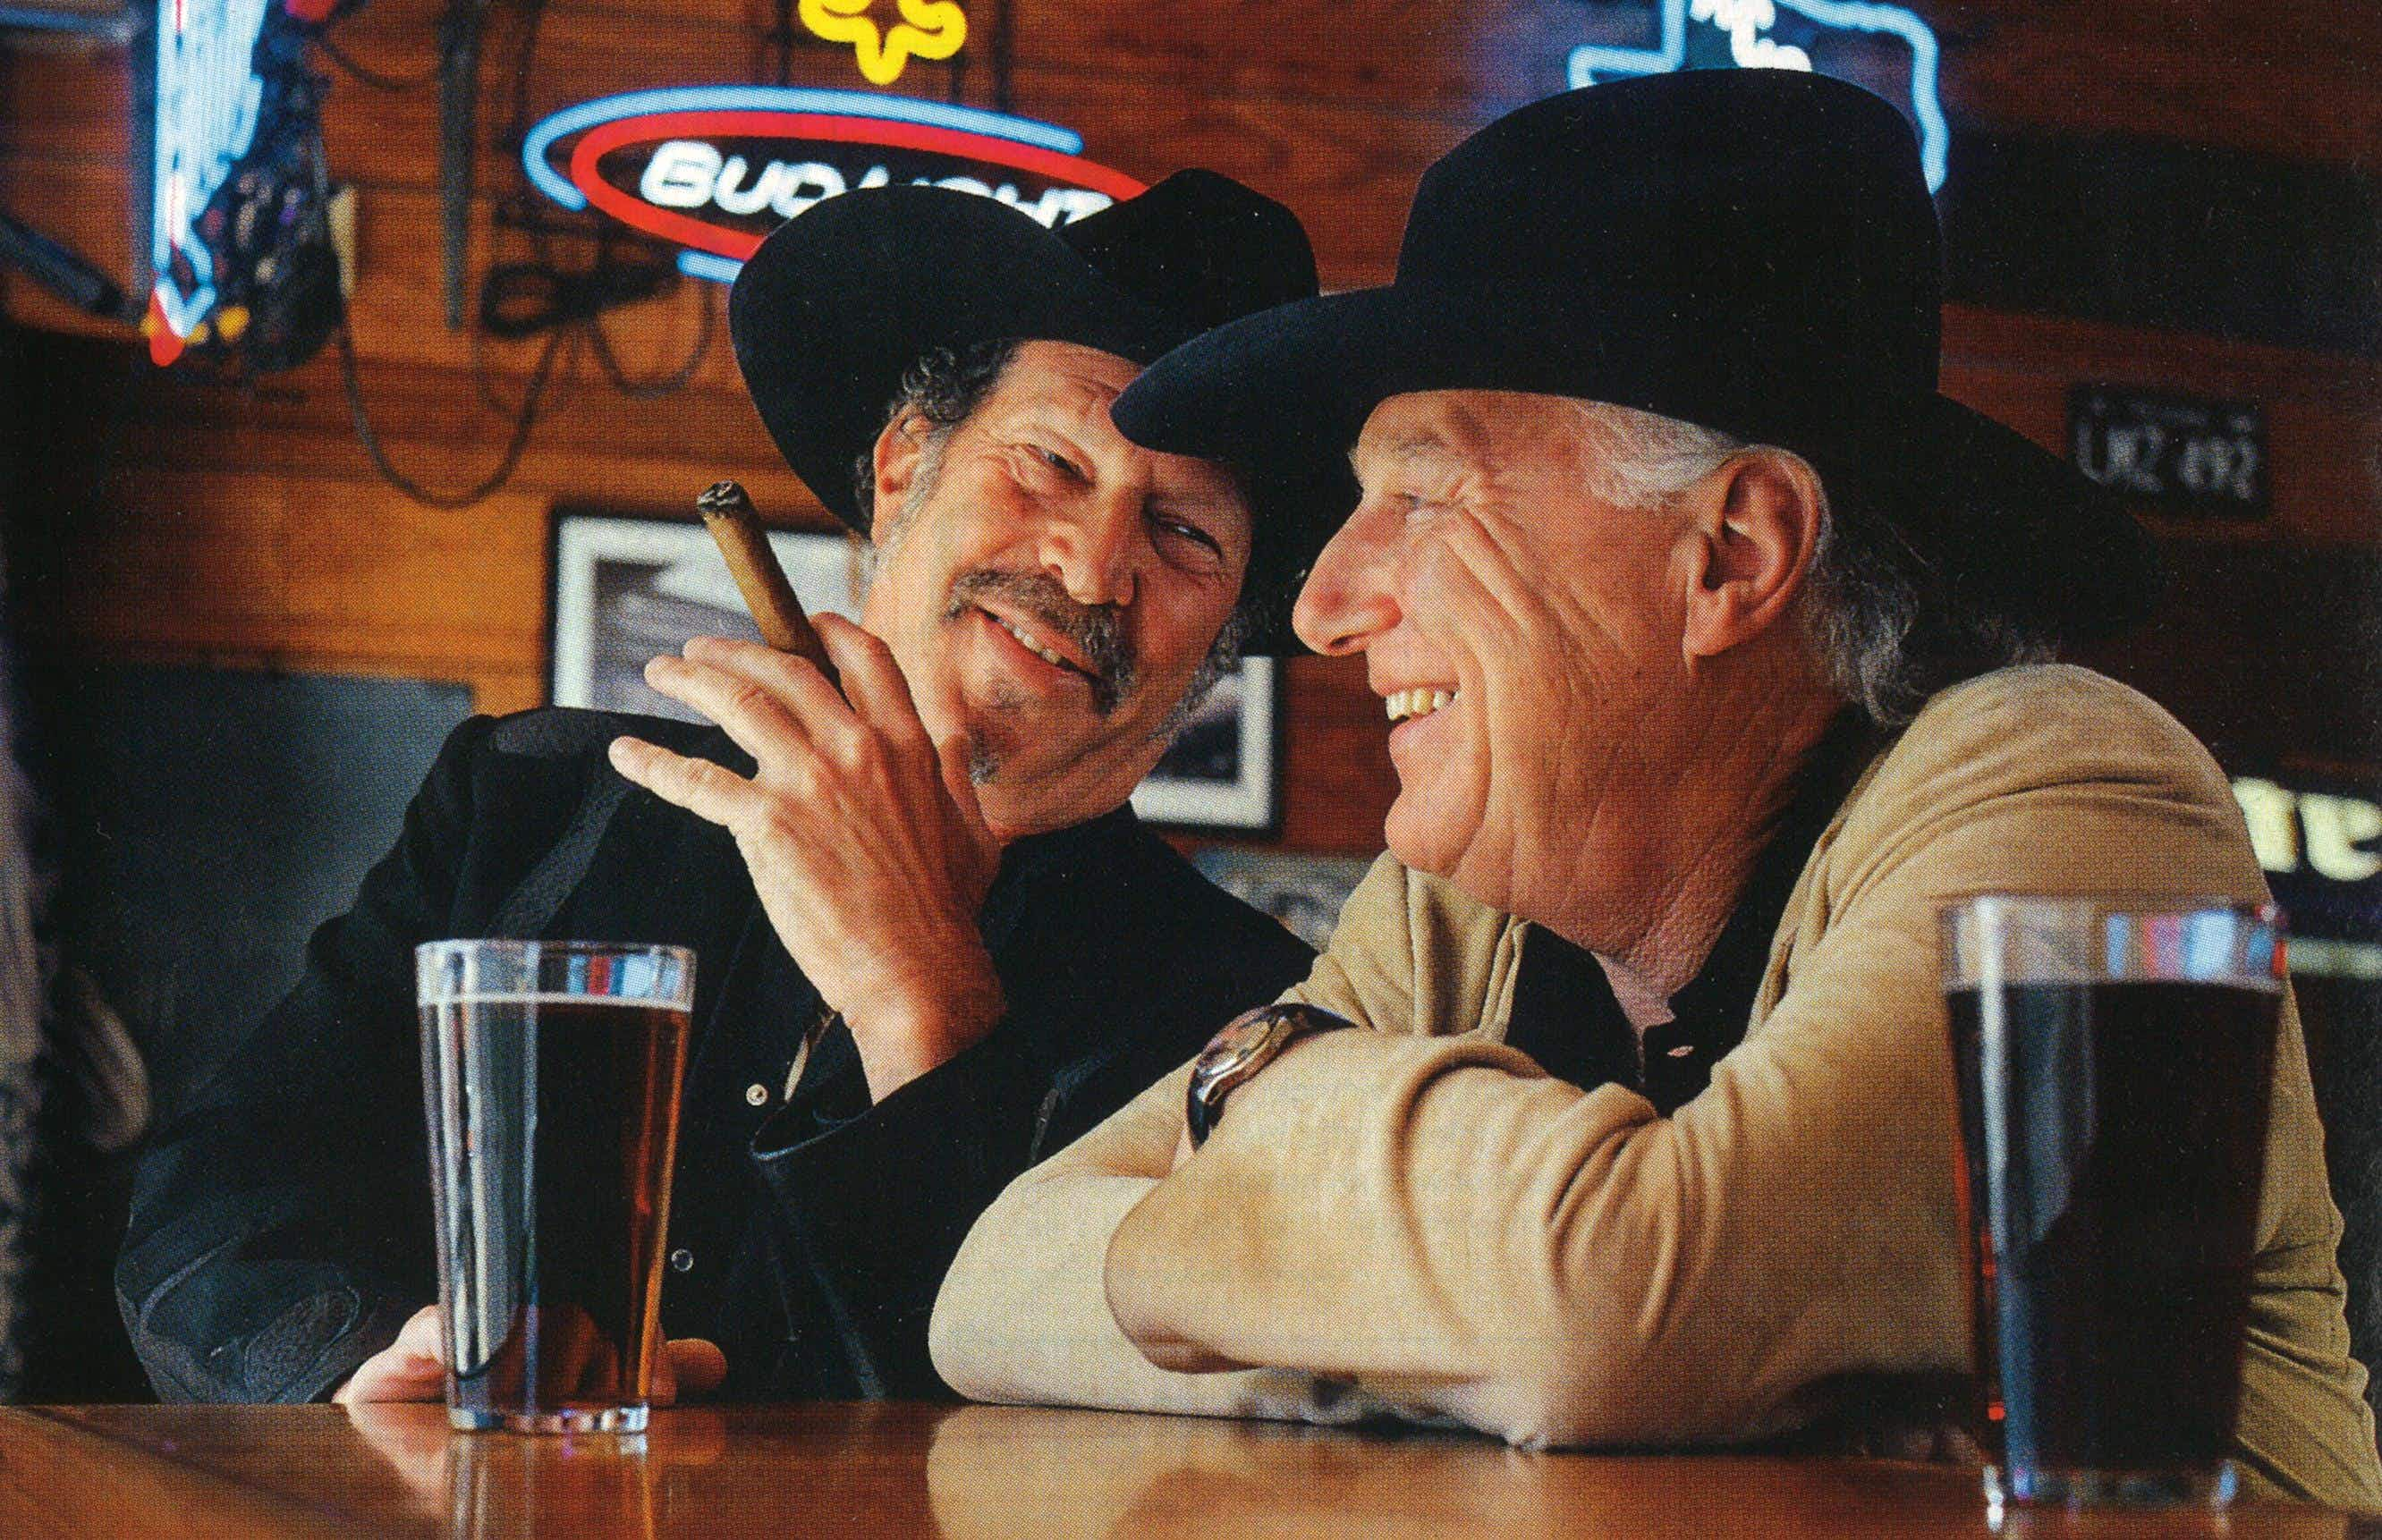 The author and Jerry Jeff, photographed at the Shoal Creek Saloon, in Austin, on November 24, 2003.